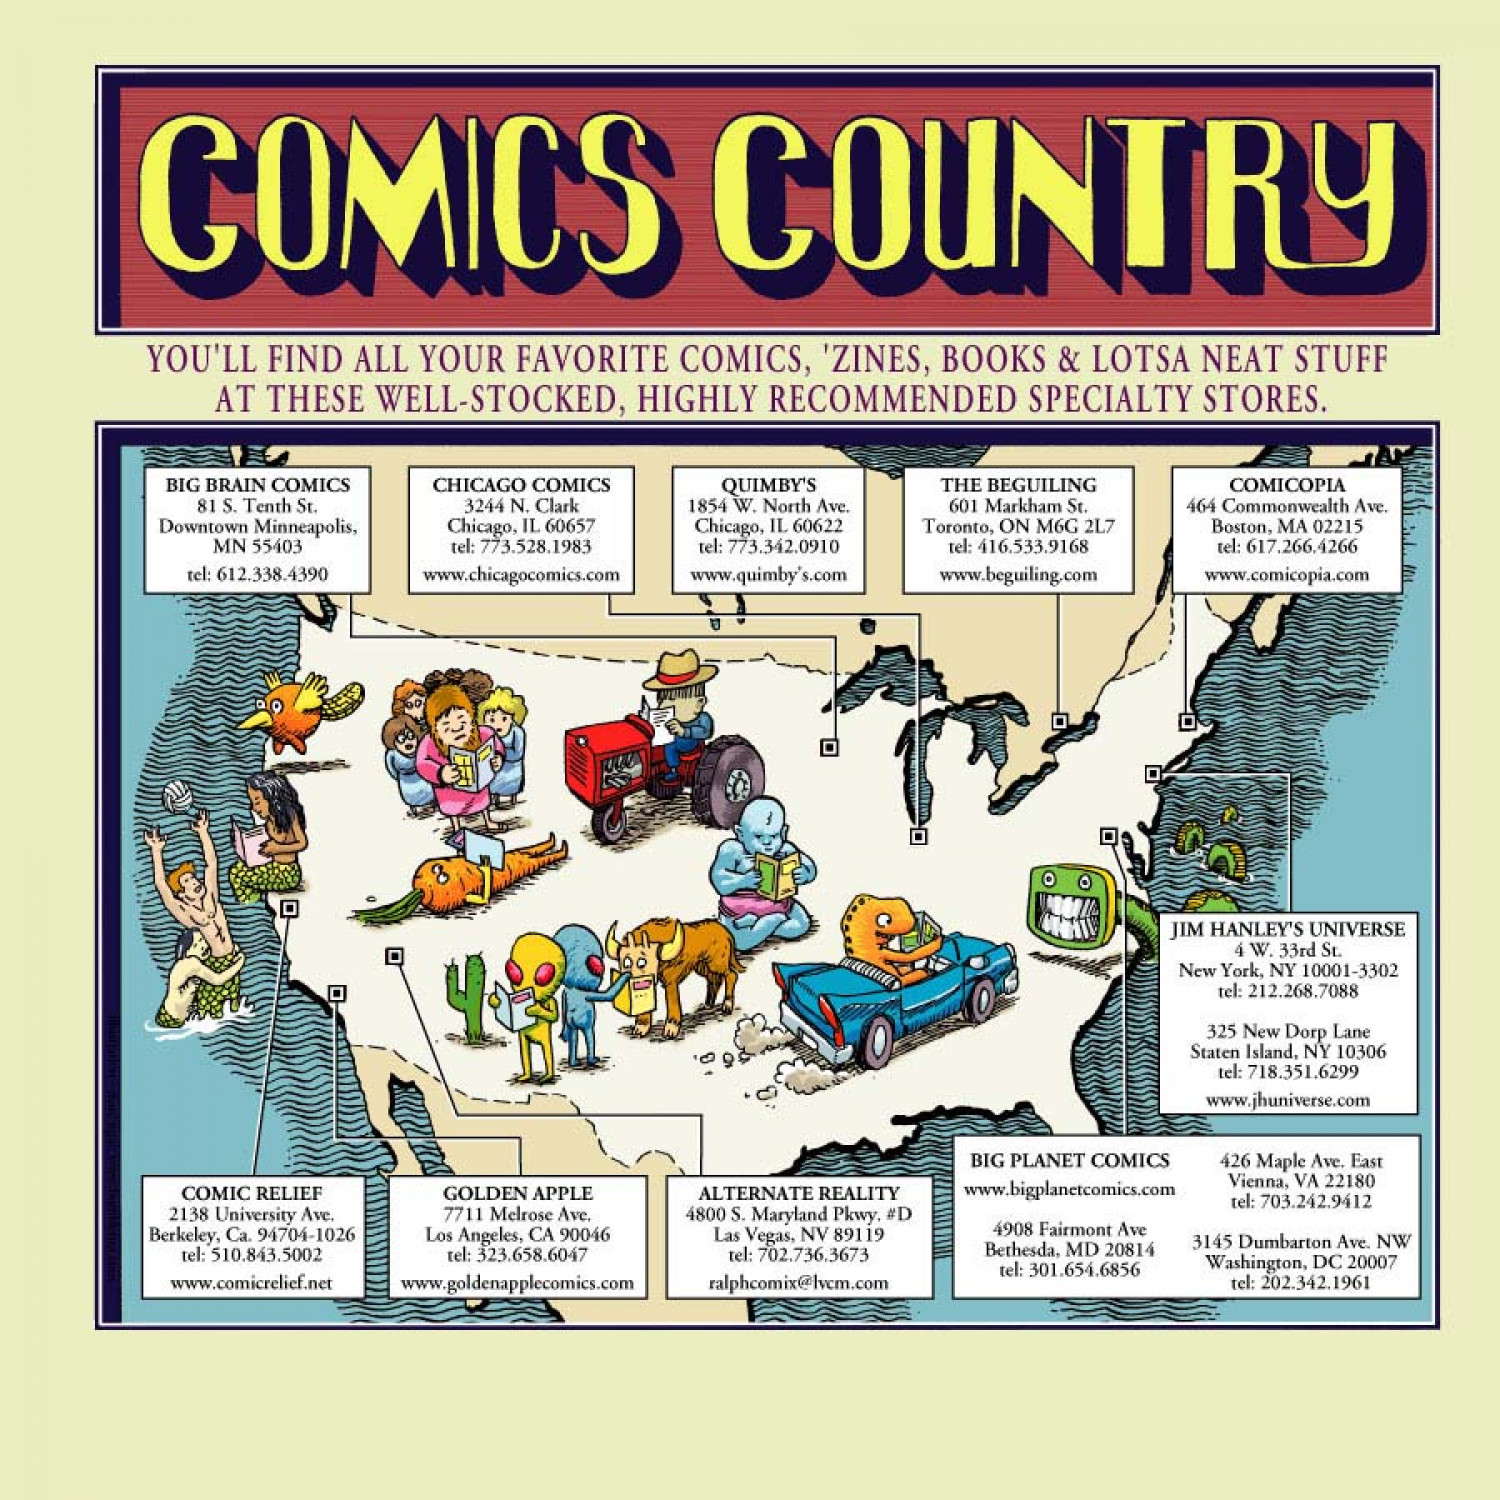 Comics Country Infographic